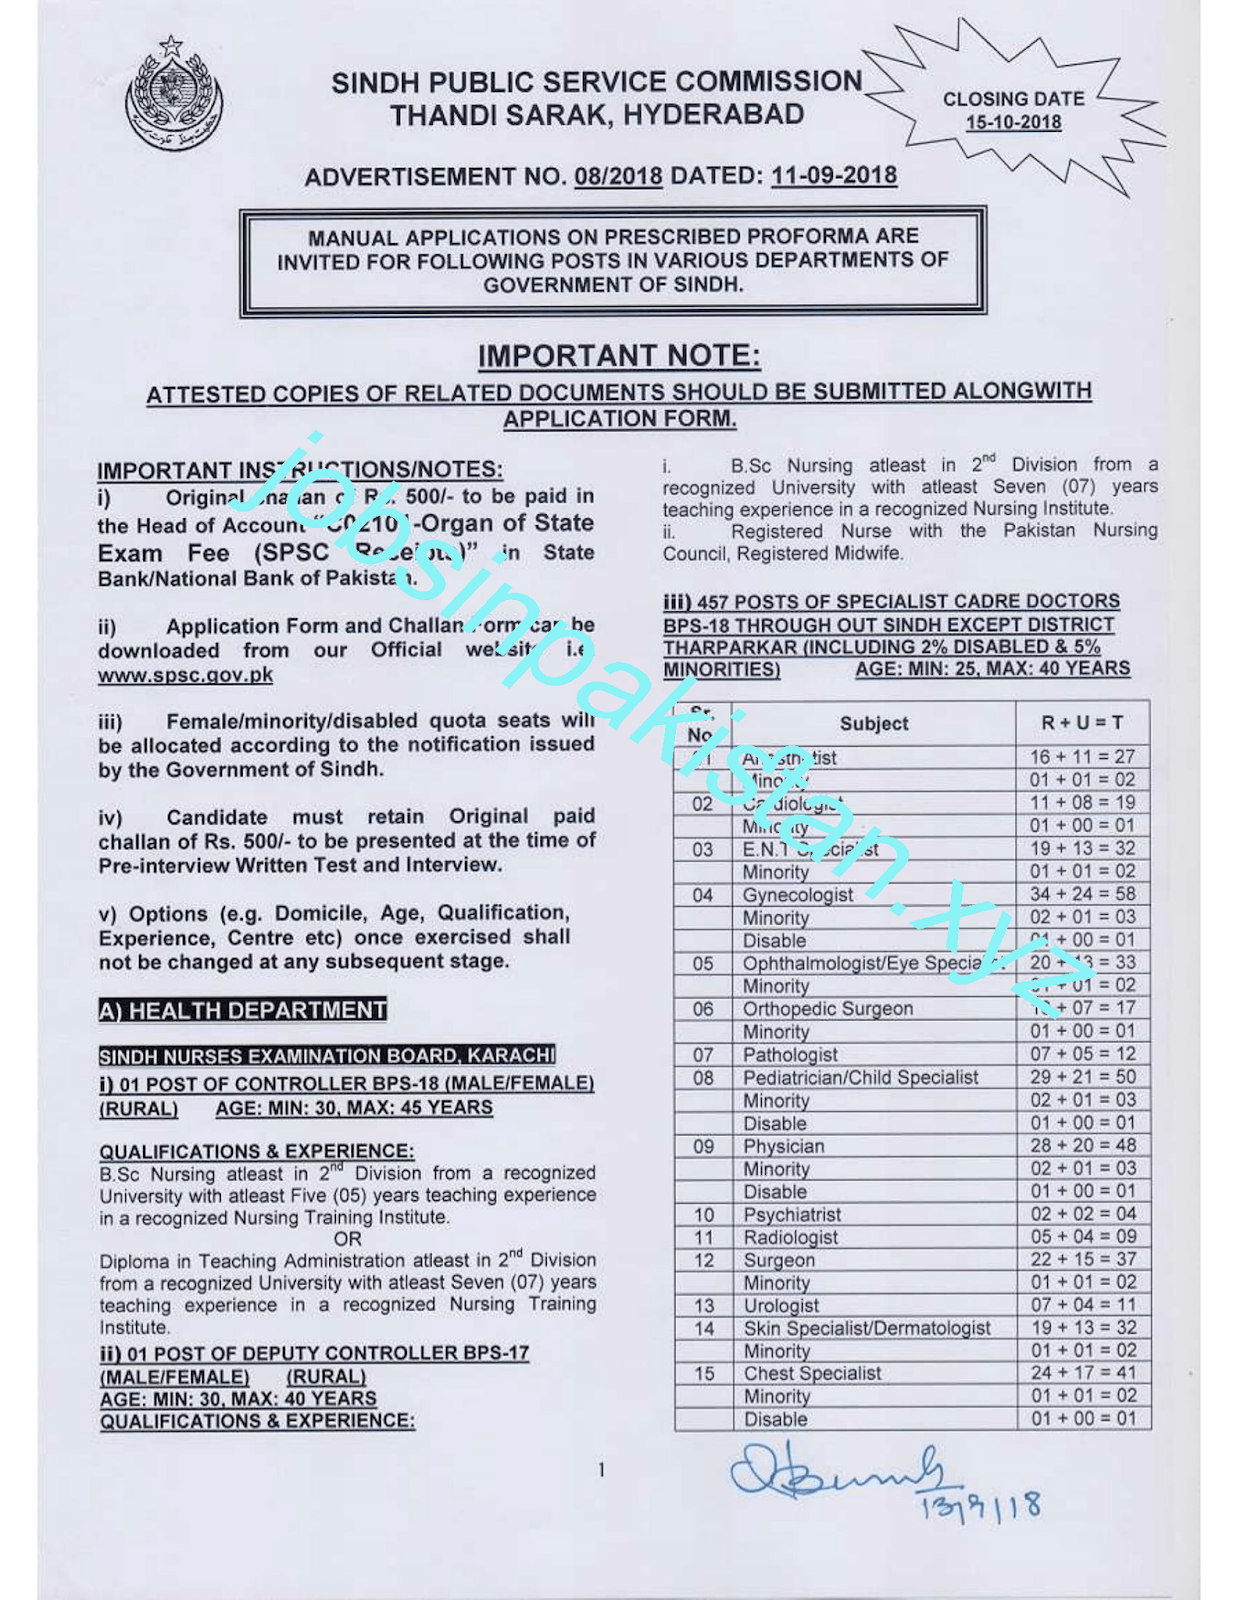 SPSC Advertisement No 08/2018 (Page No 1)